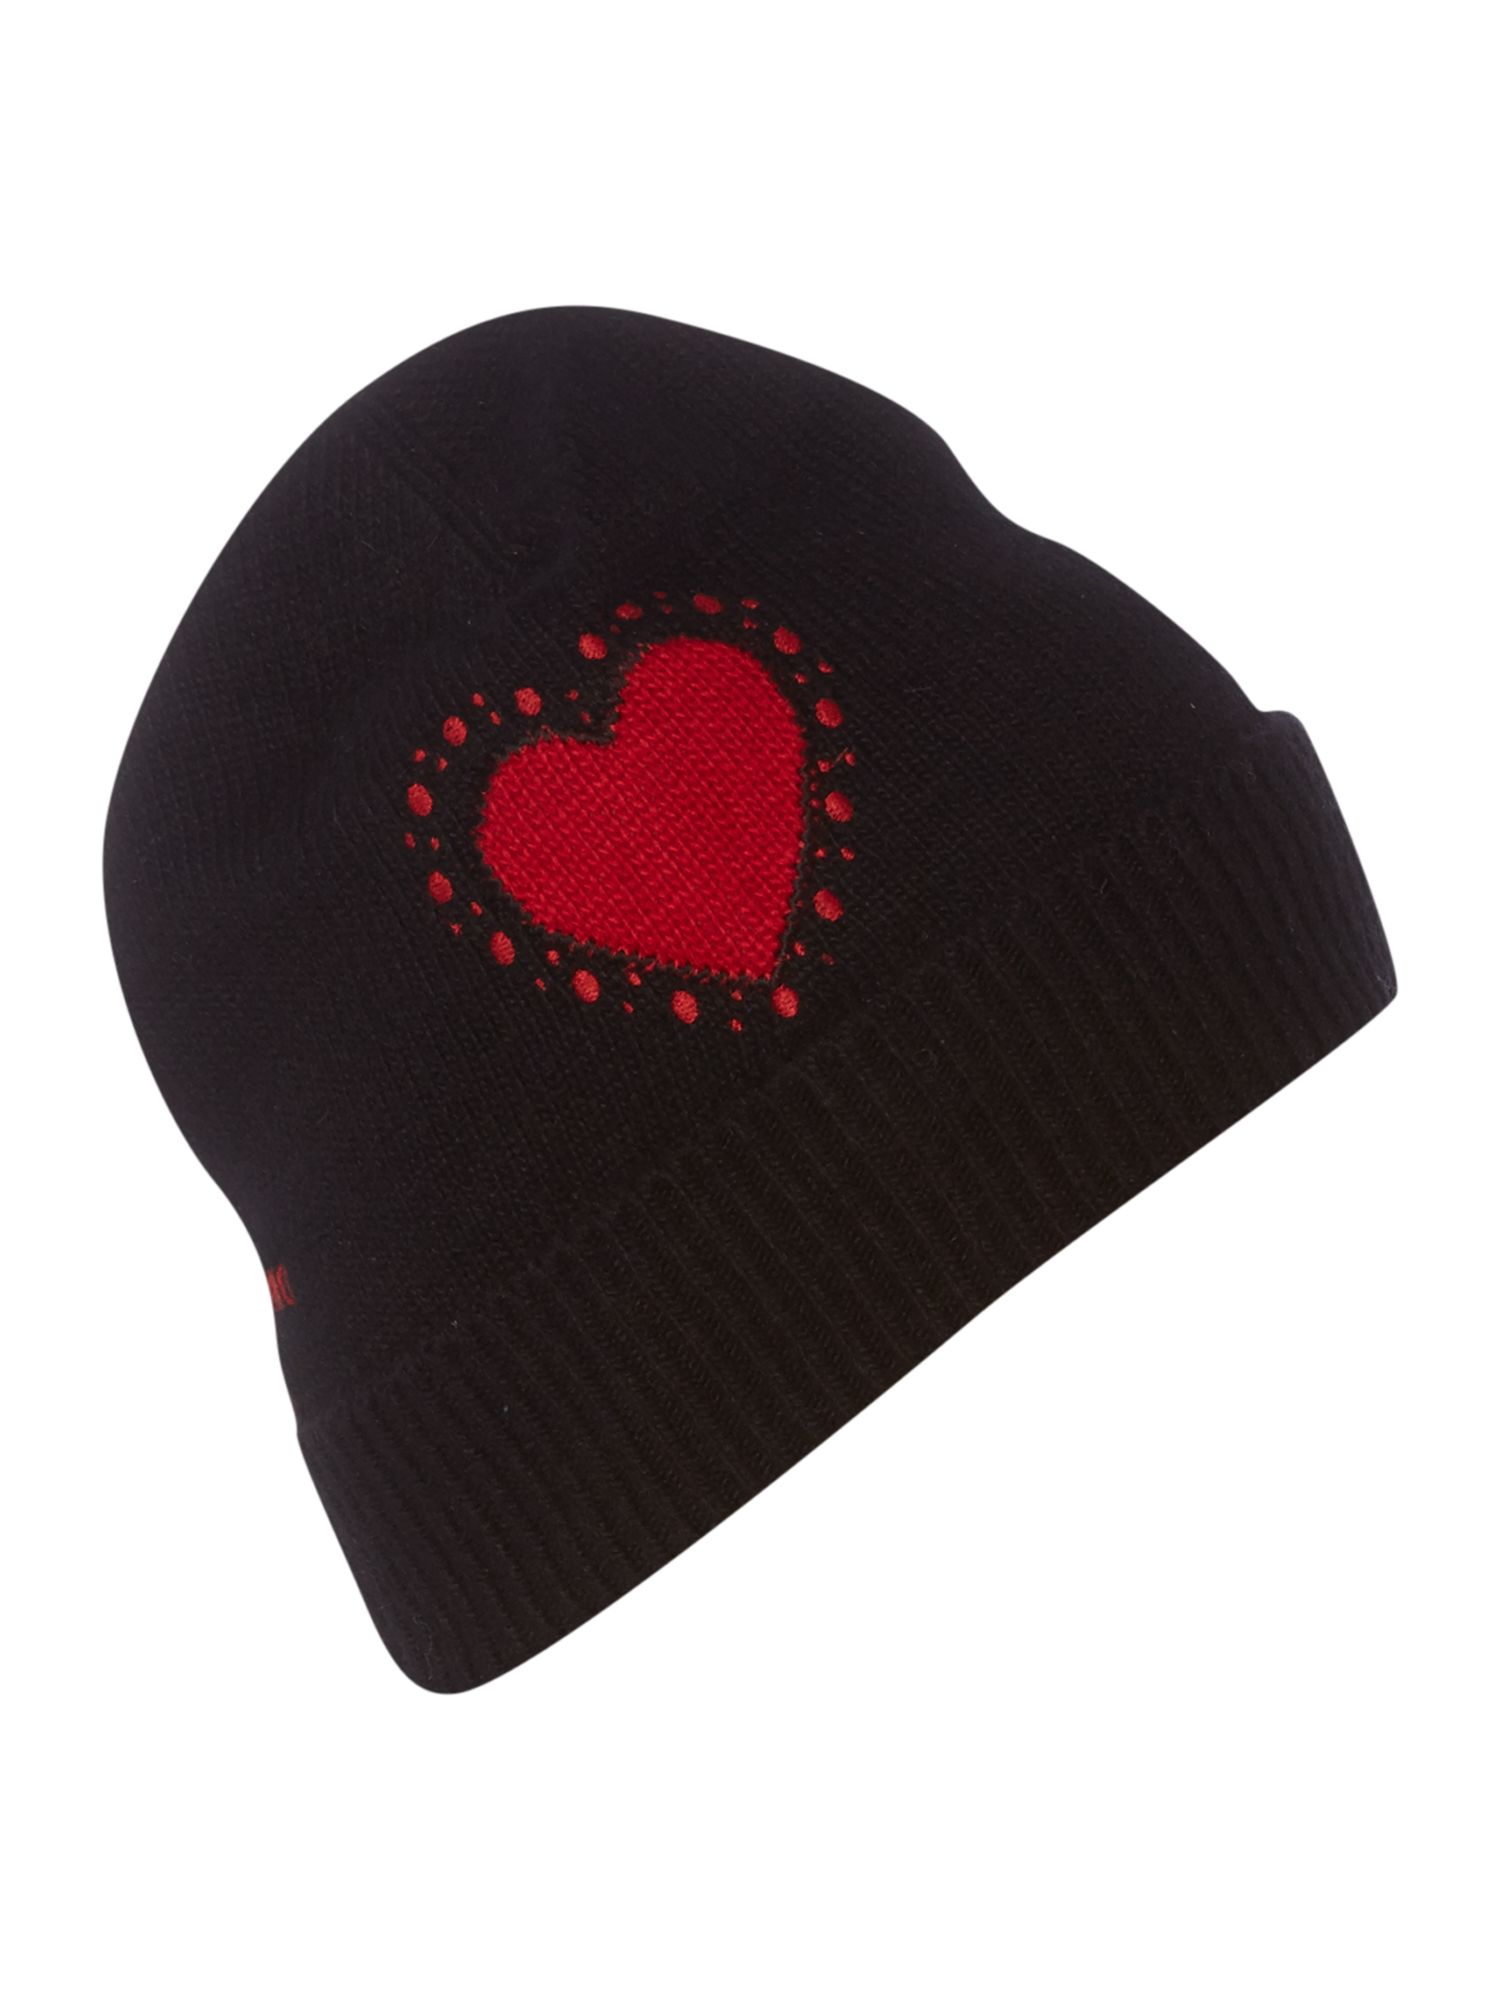 Heart with dots knitted hat